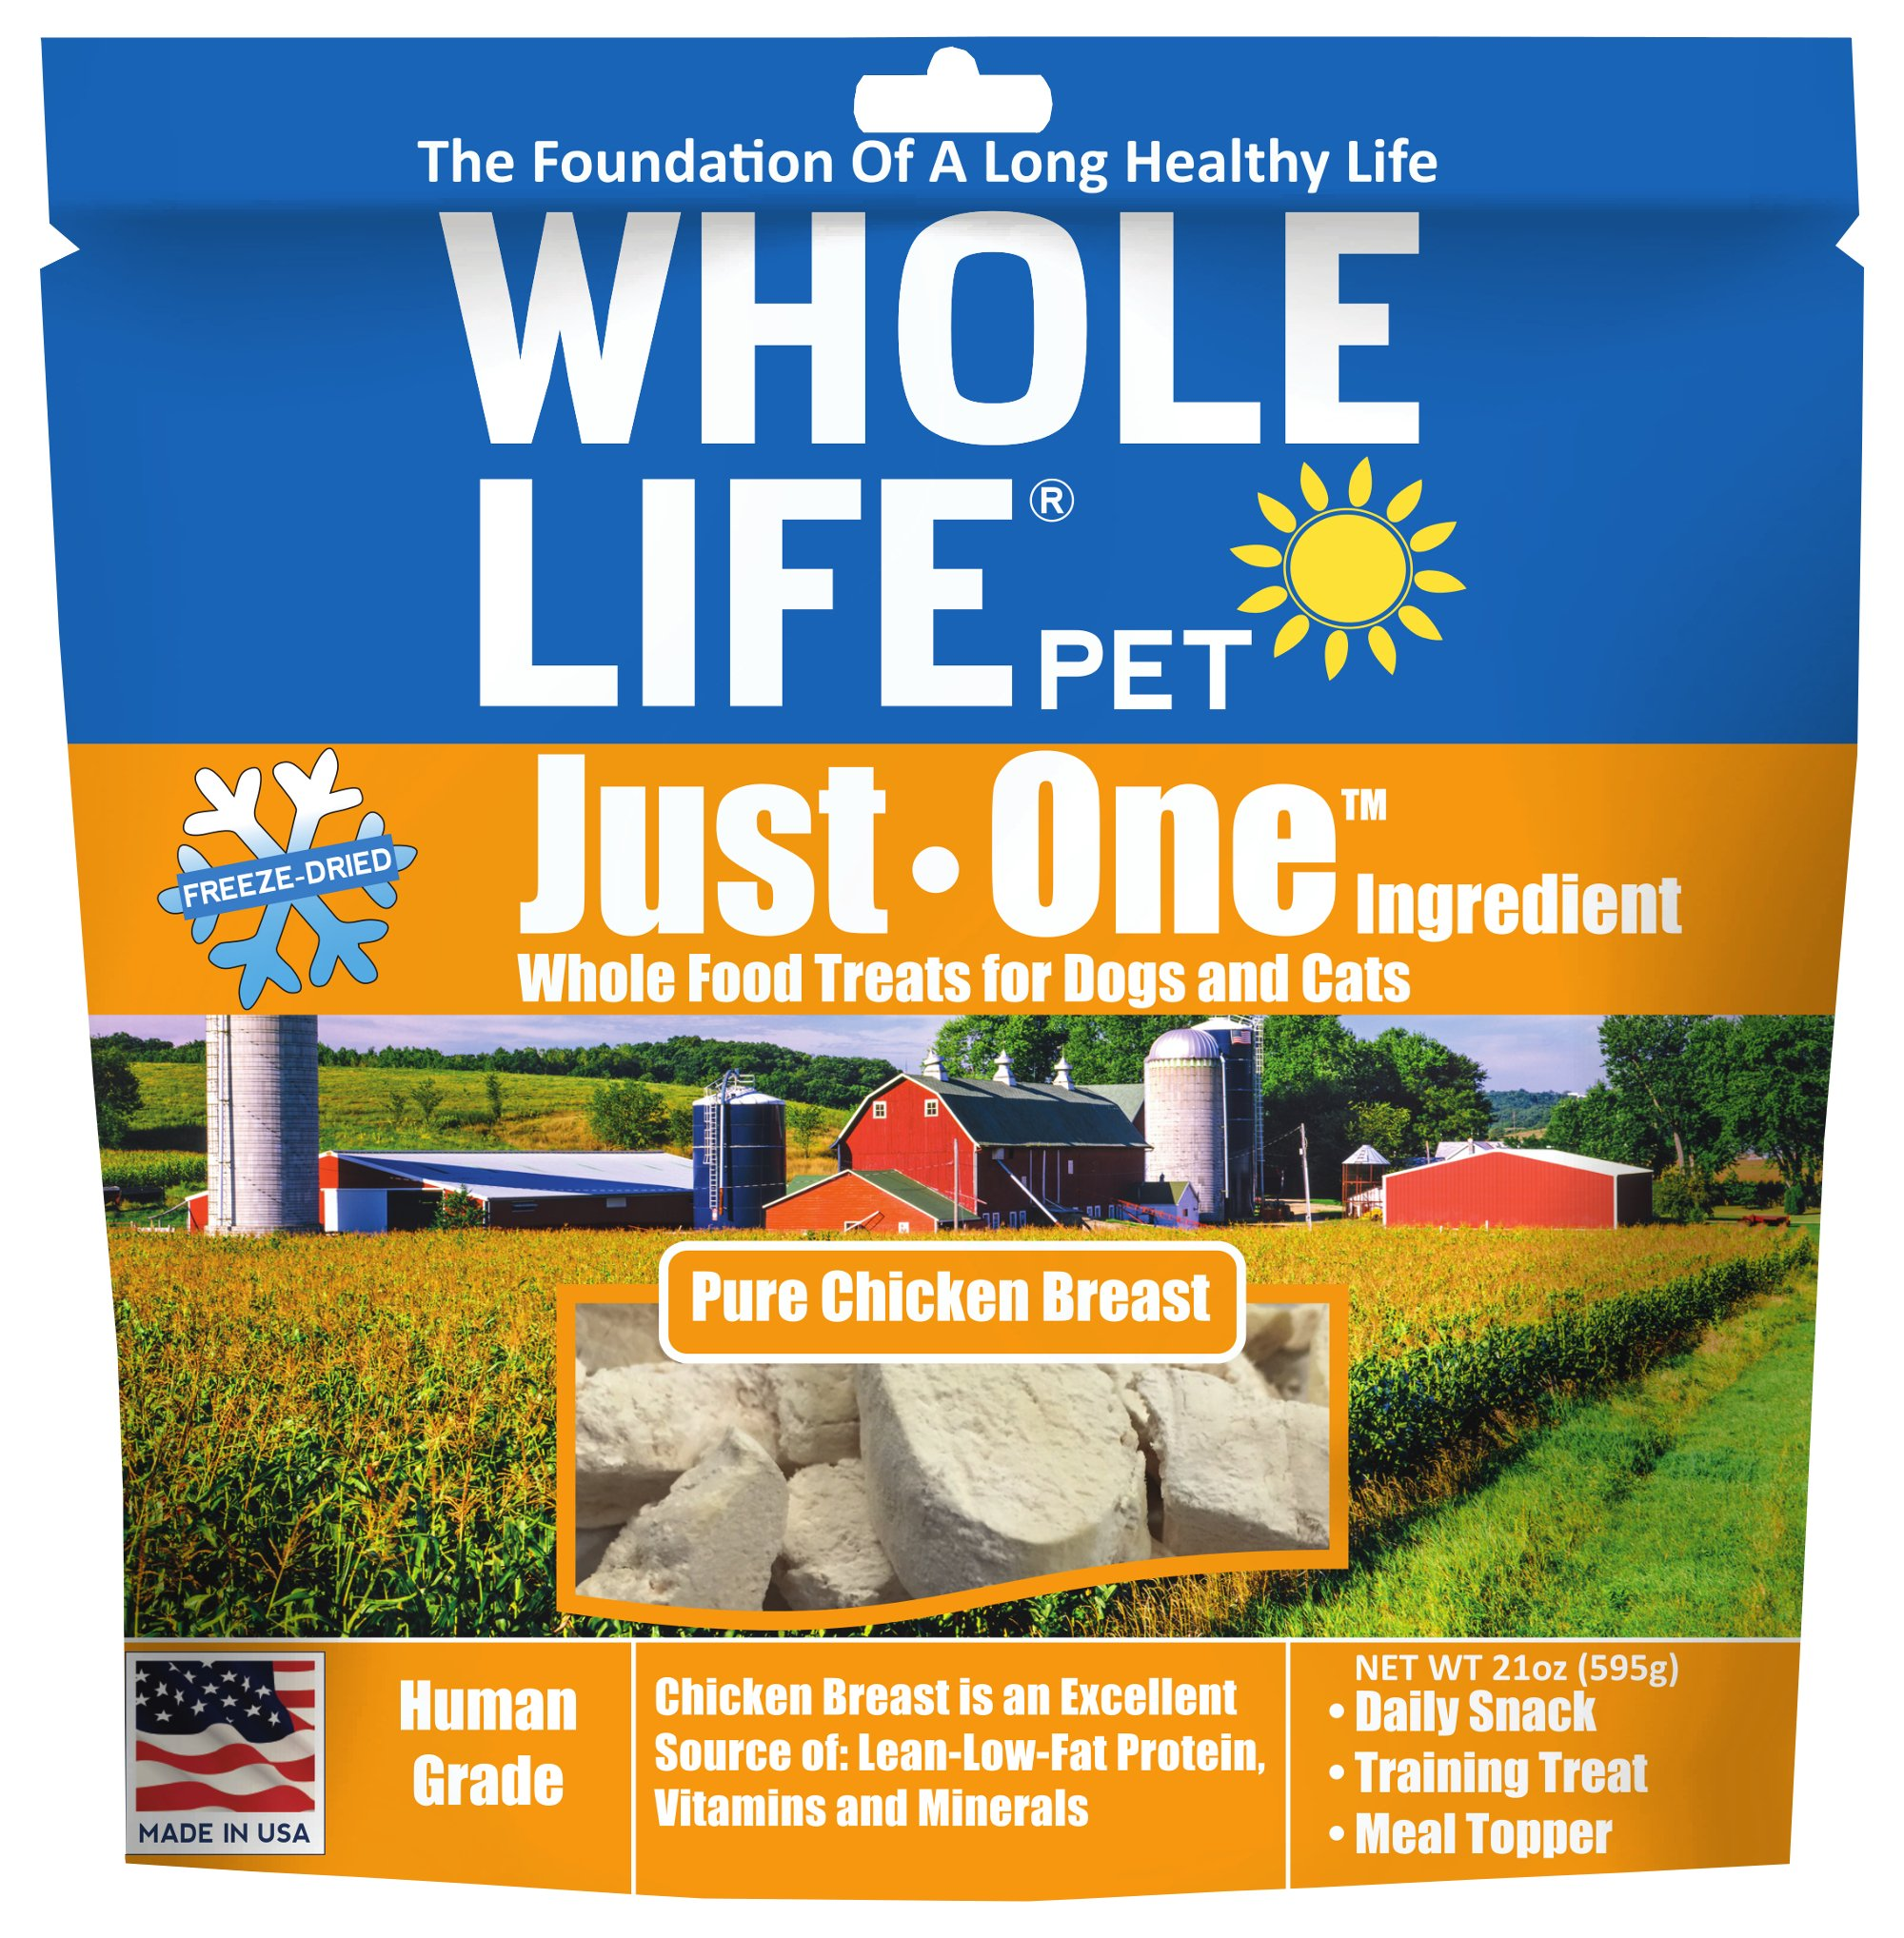 Whole Life Pet Single Ingredient USA Freeze Dried Chicken Breast Treats Value Pack for Dogs and Cats, 21-Ounce